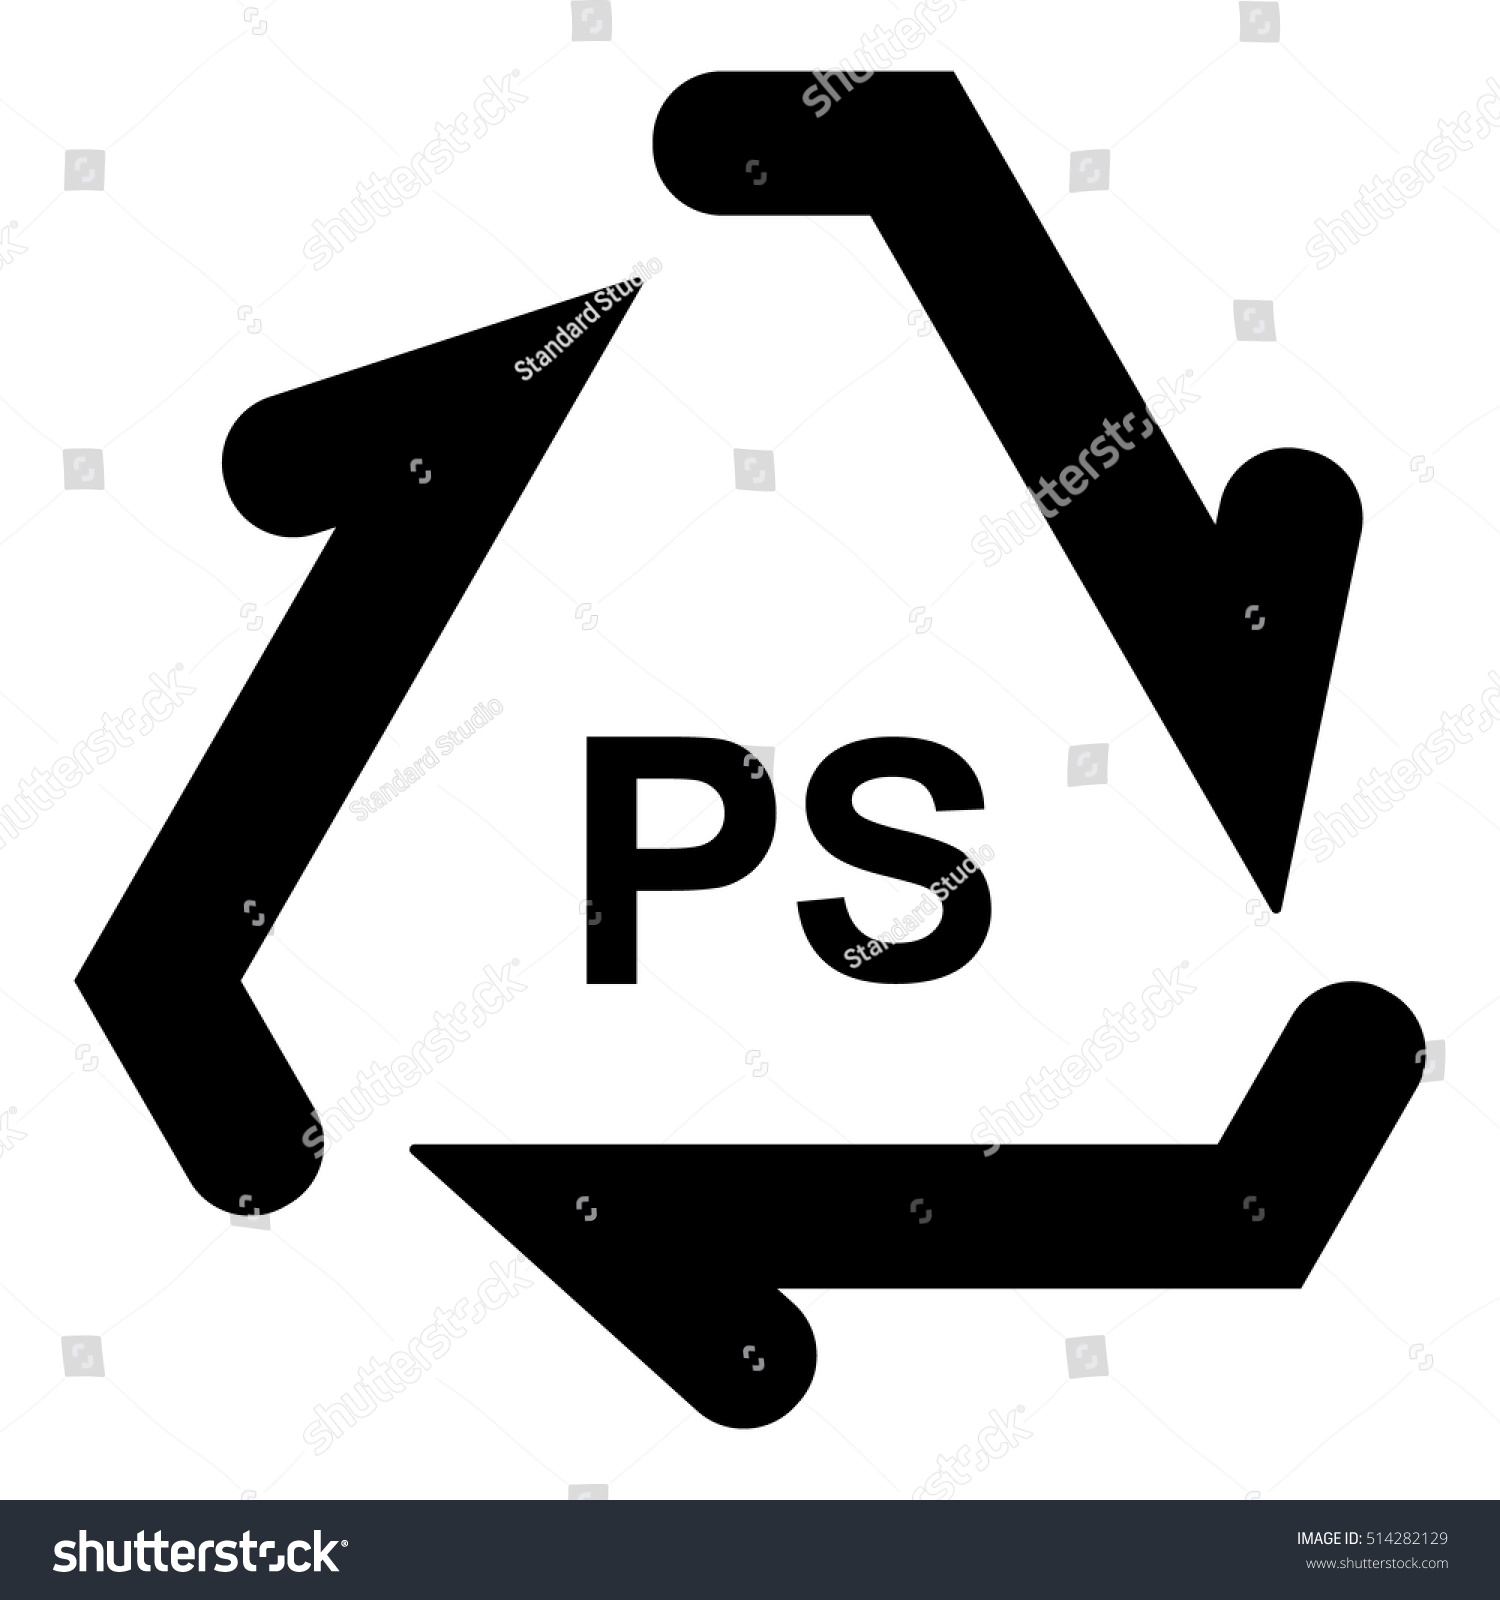 Plastic recycle symbol ps plastic recycling stock vector 514282129 plastic recycle symbol ps plastic recycling code ps vector illustration buycottarizona